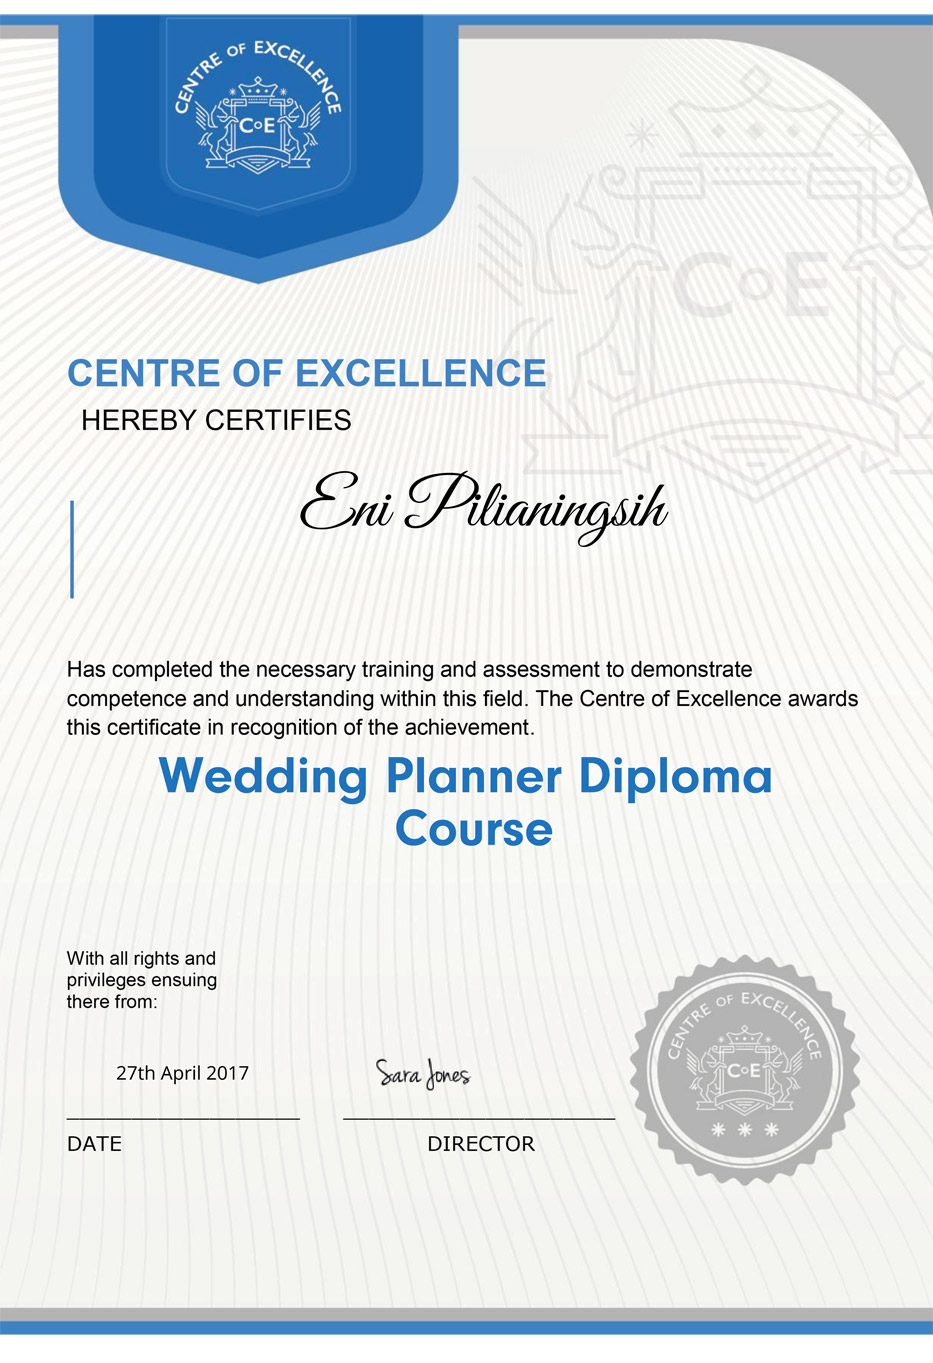 excellent awards for wedding planner